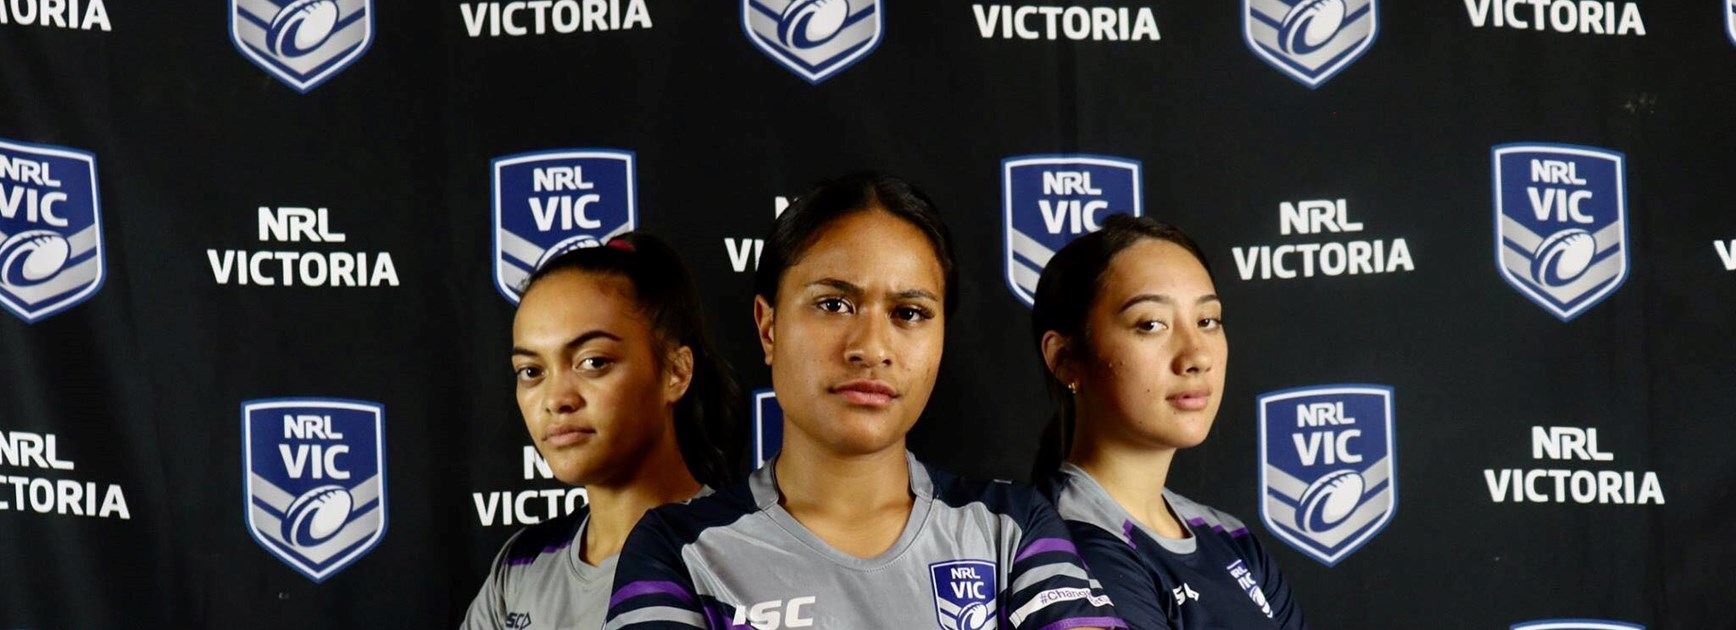 VIC Women heading to Sydney